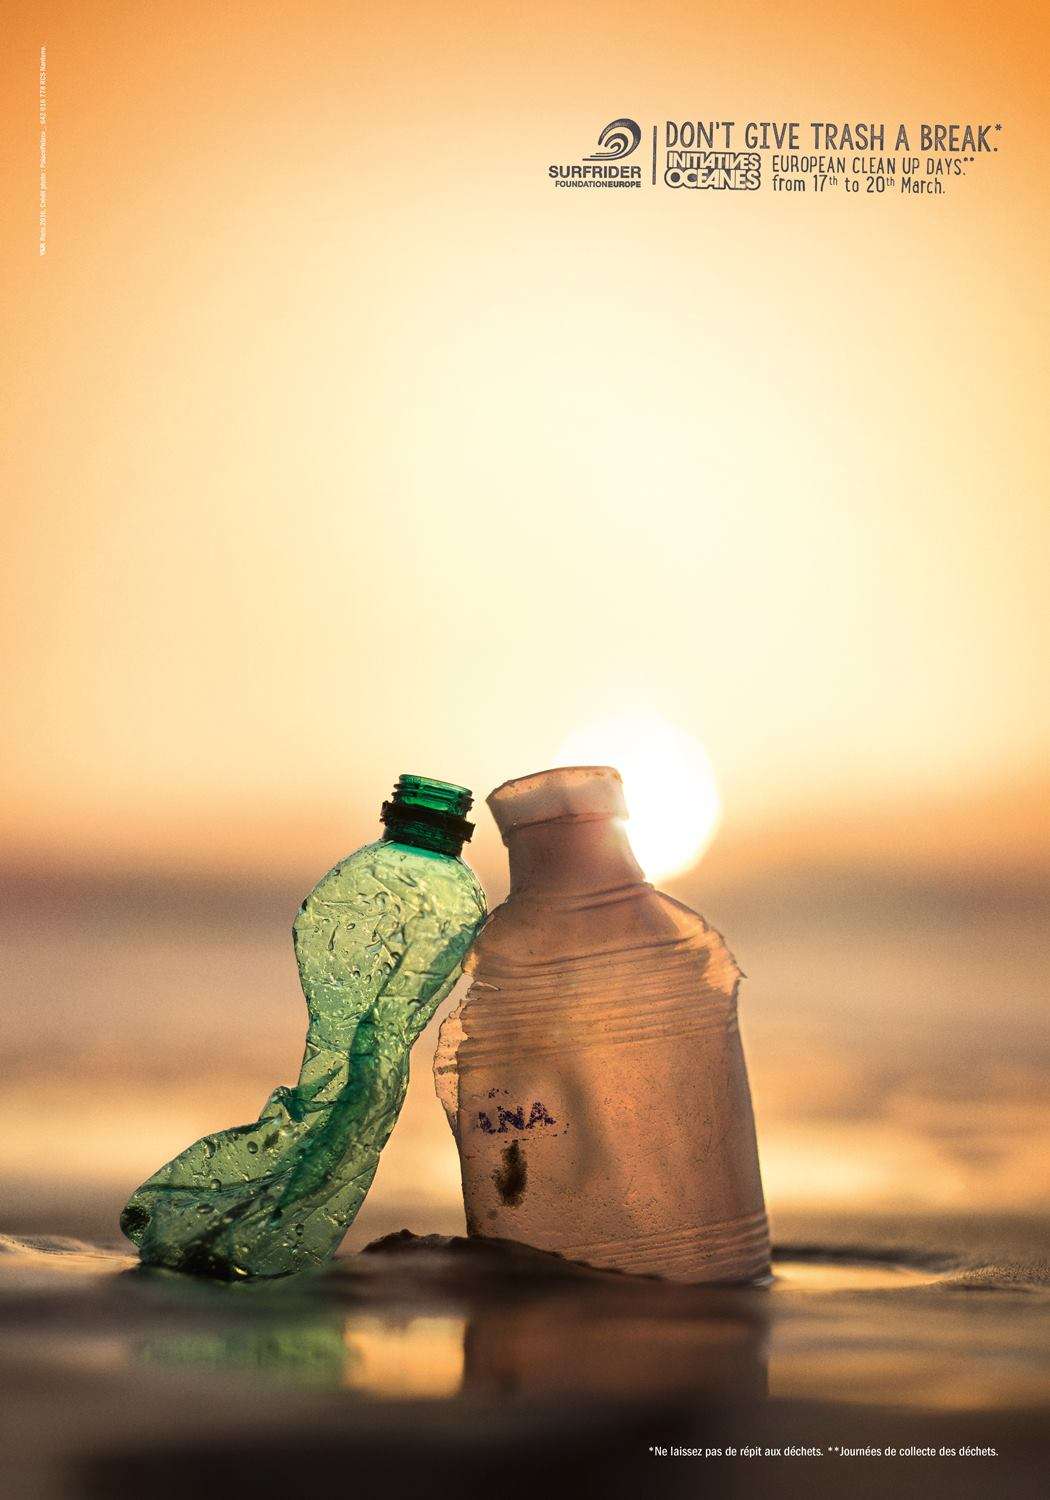 surfrider-foundation-marketing-commercial-ad-dont-give-trash-a-break-agence-yr-paris-1